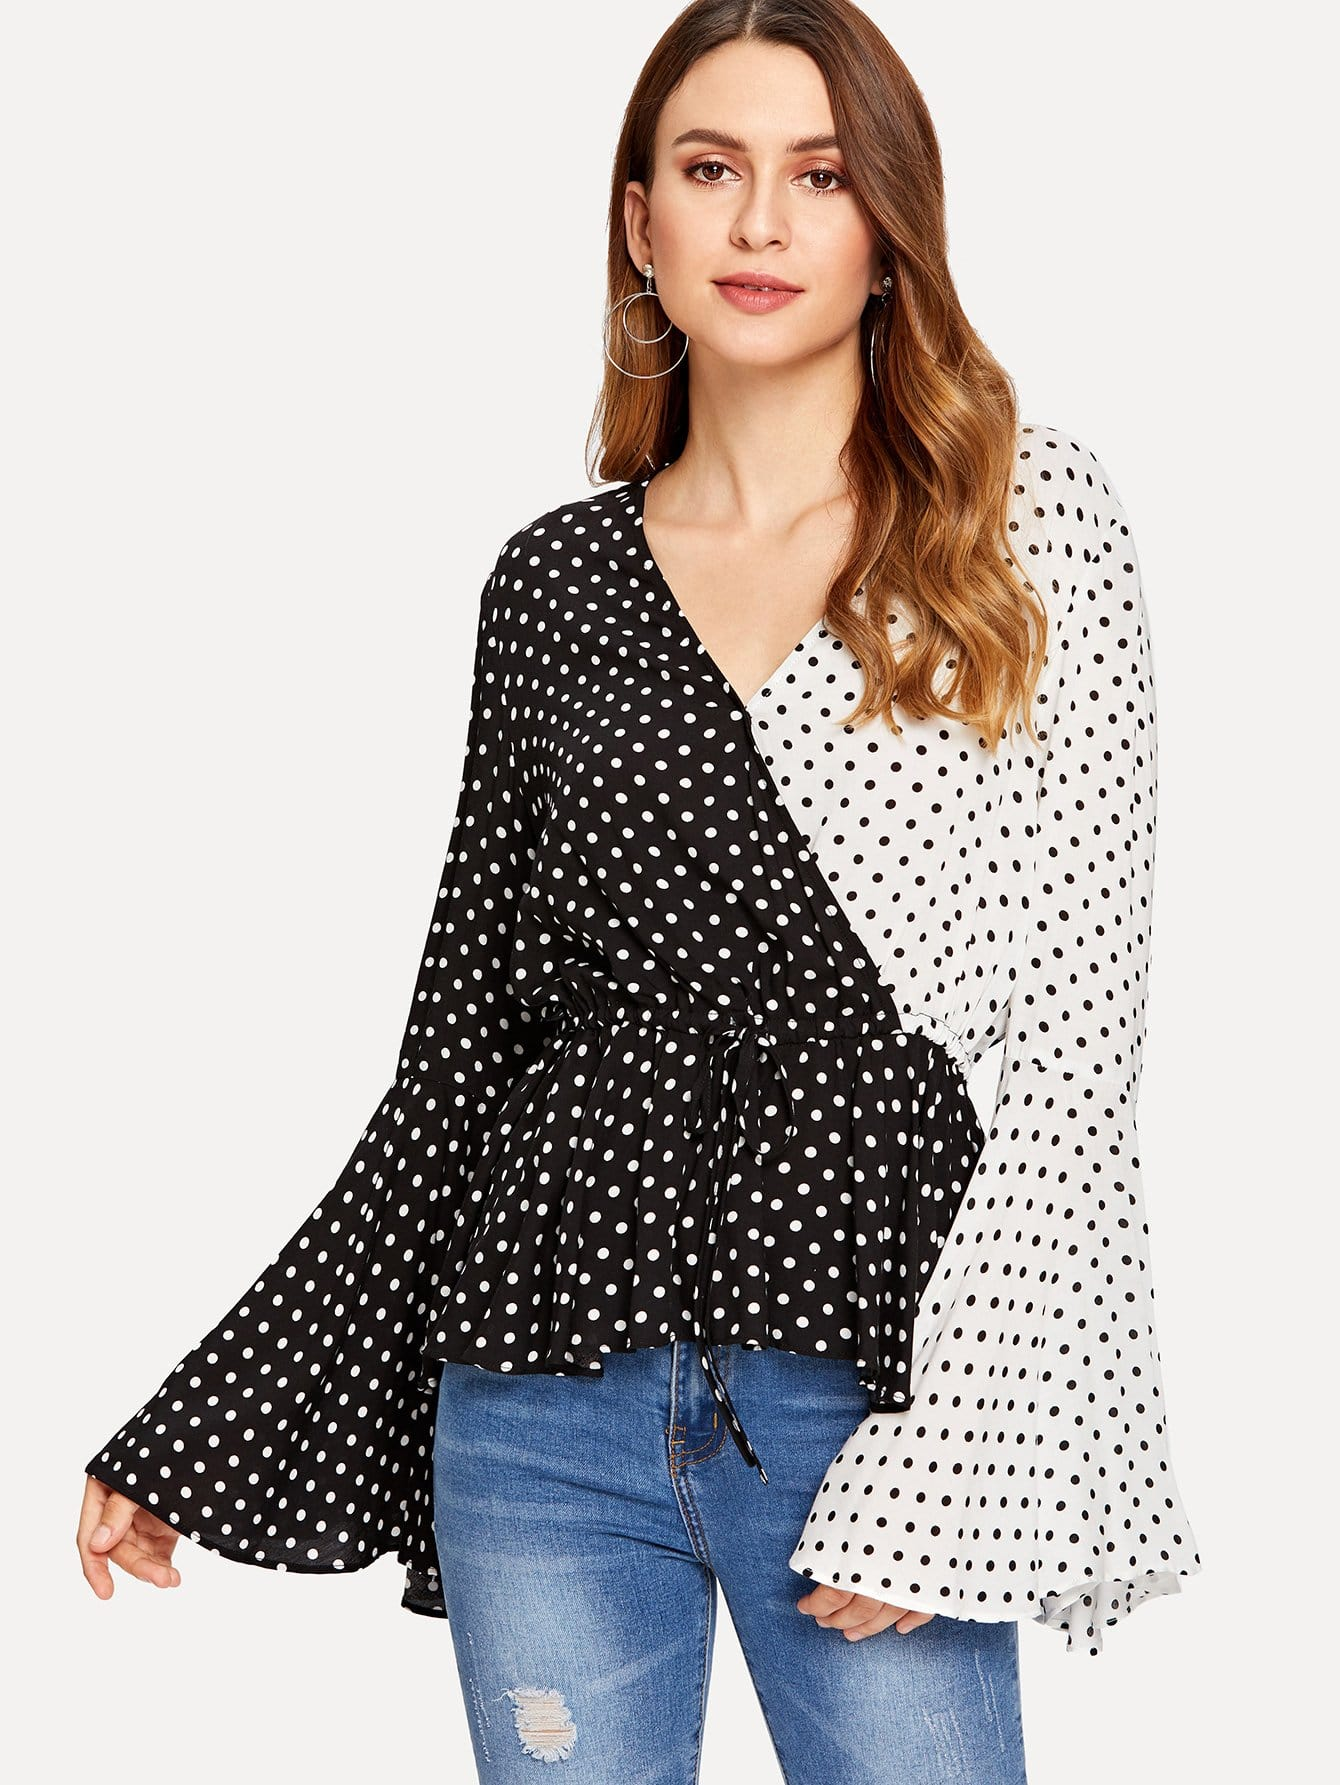 Exaggerate Cuff Two Tone Polka Dot Belted Top two tone belted trench coat